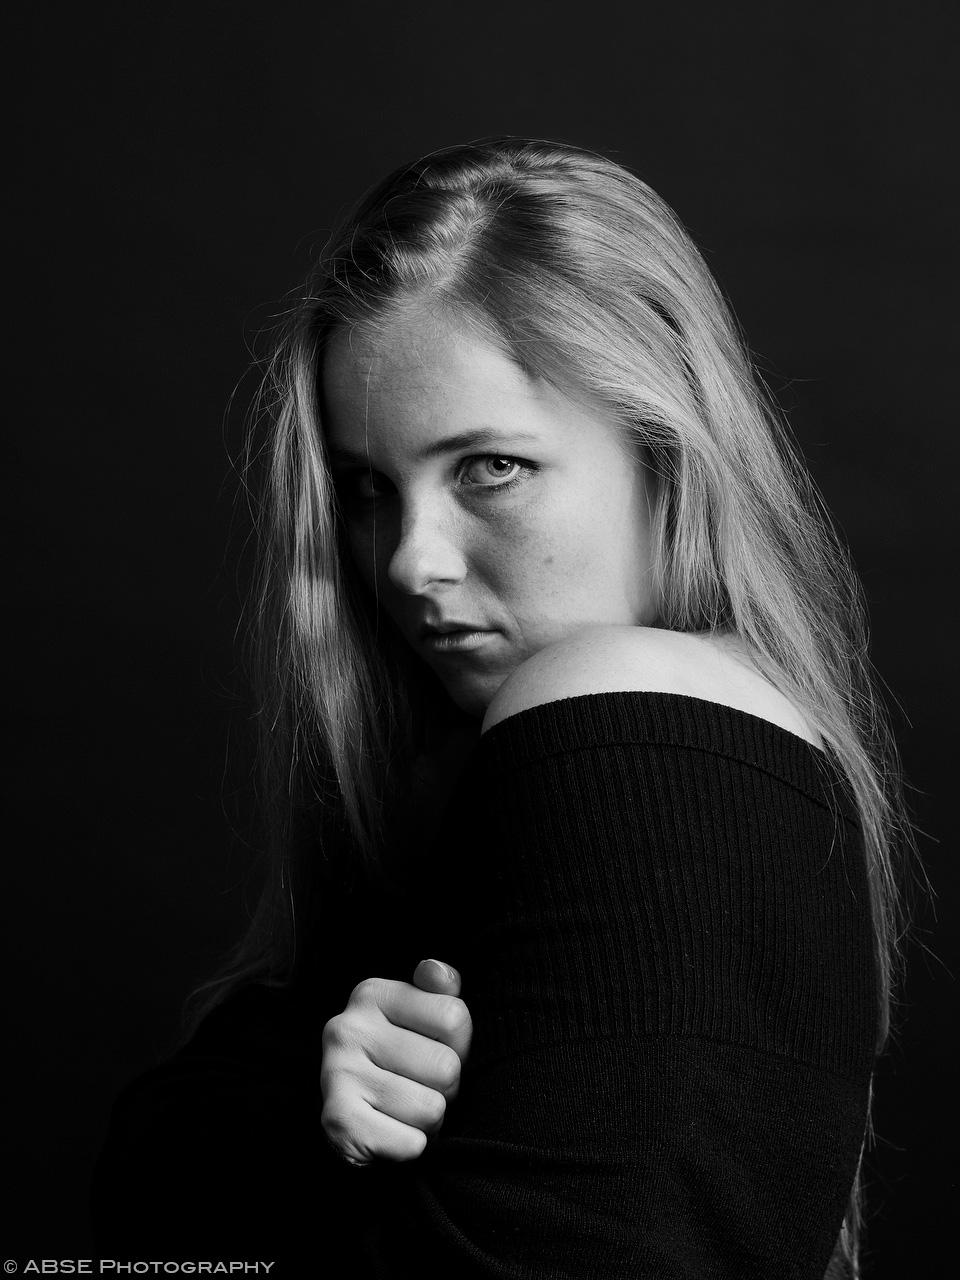 IMAGE: http://blog.absephotography.com/wp-content/uploads/2017/10/aurora-nordica-portrait-studio-black-and-white-hug-final.jpg